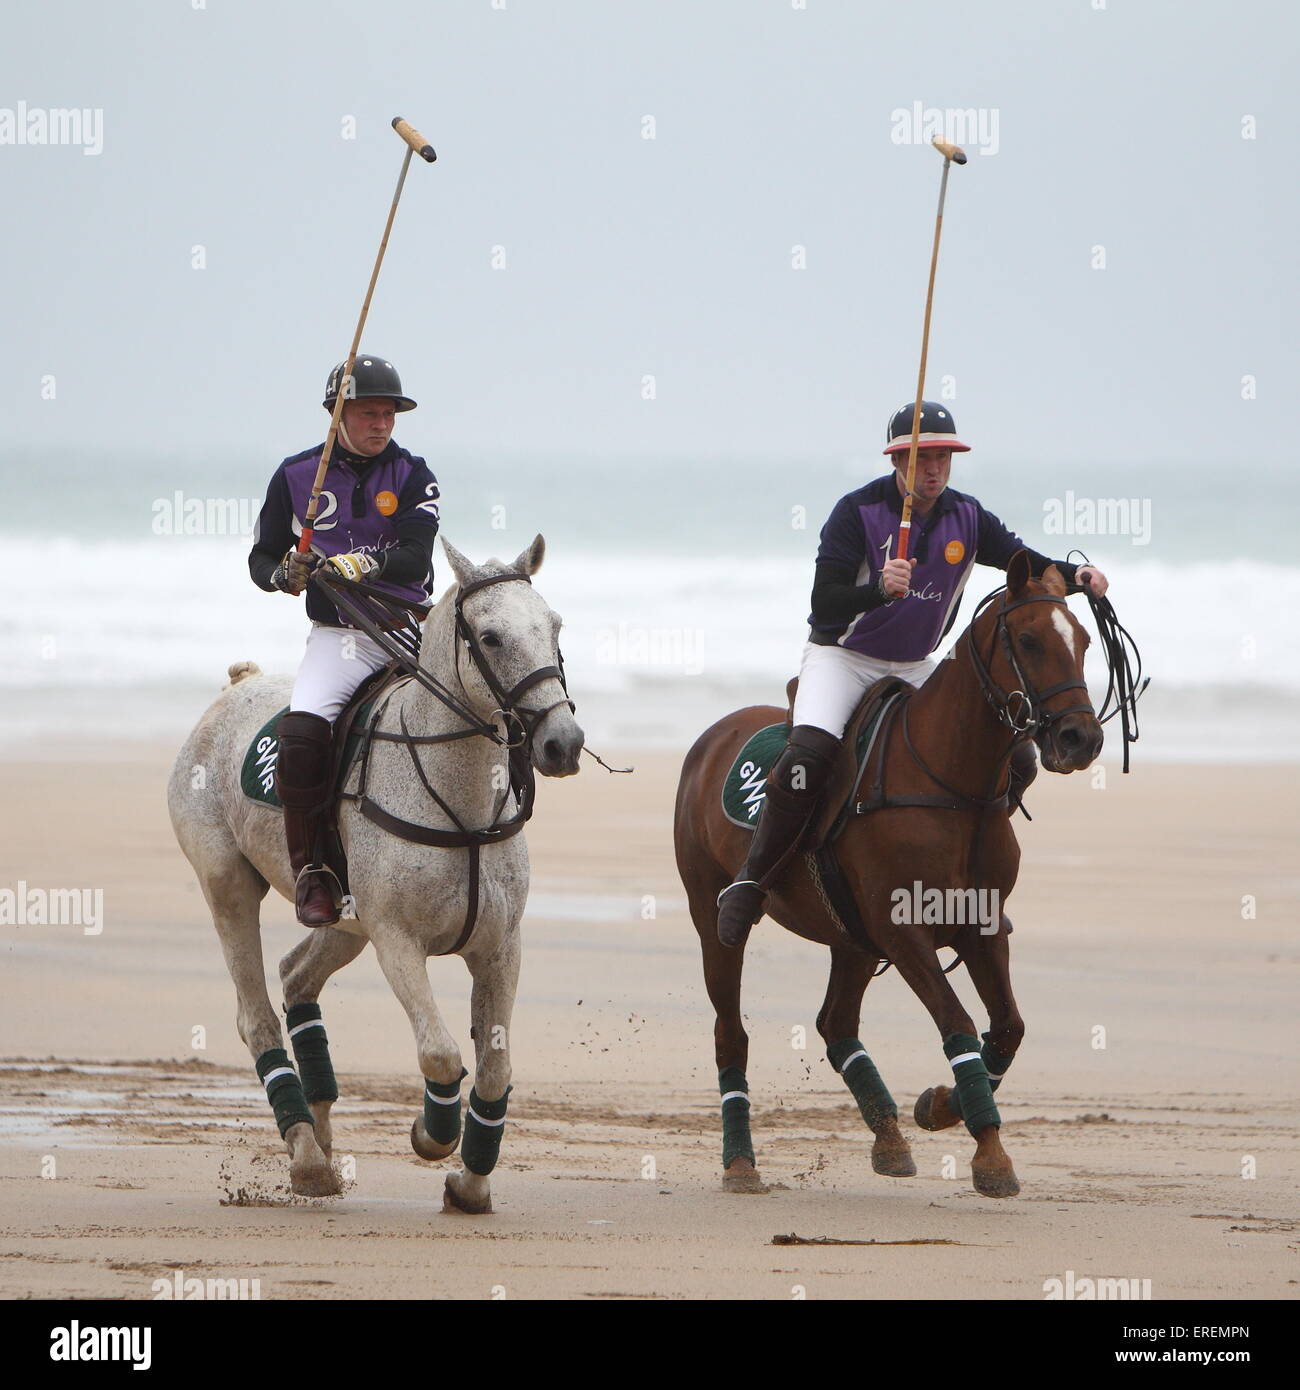 Watergate Bay, Newquay, Cornwall, UK. 2nd June, 2015. Professional Polo players Andy Burgess riding Tonka and Daniel - Stock Image